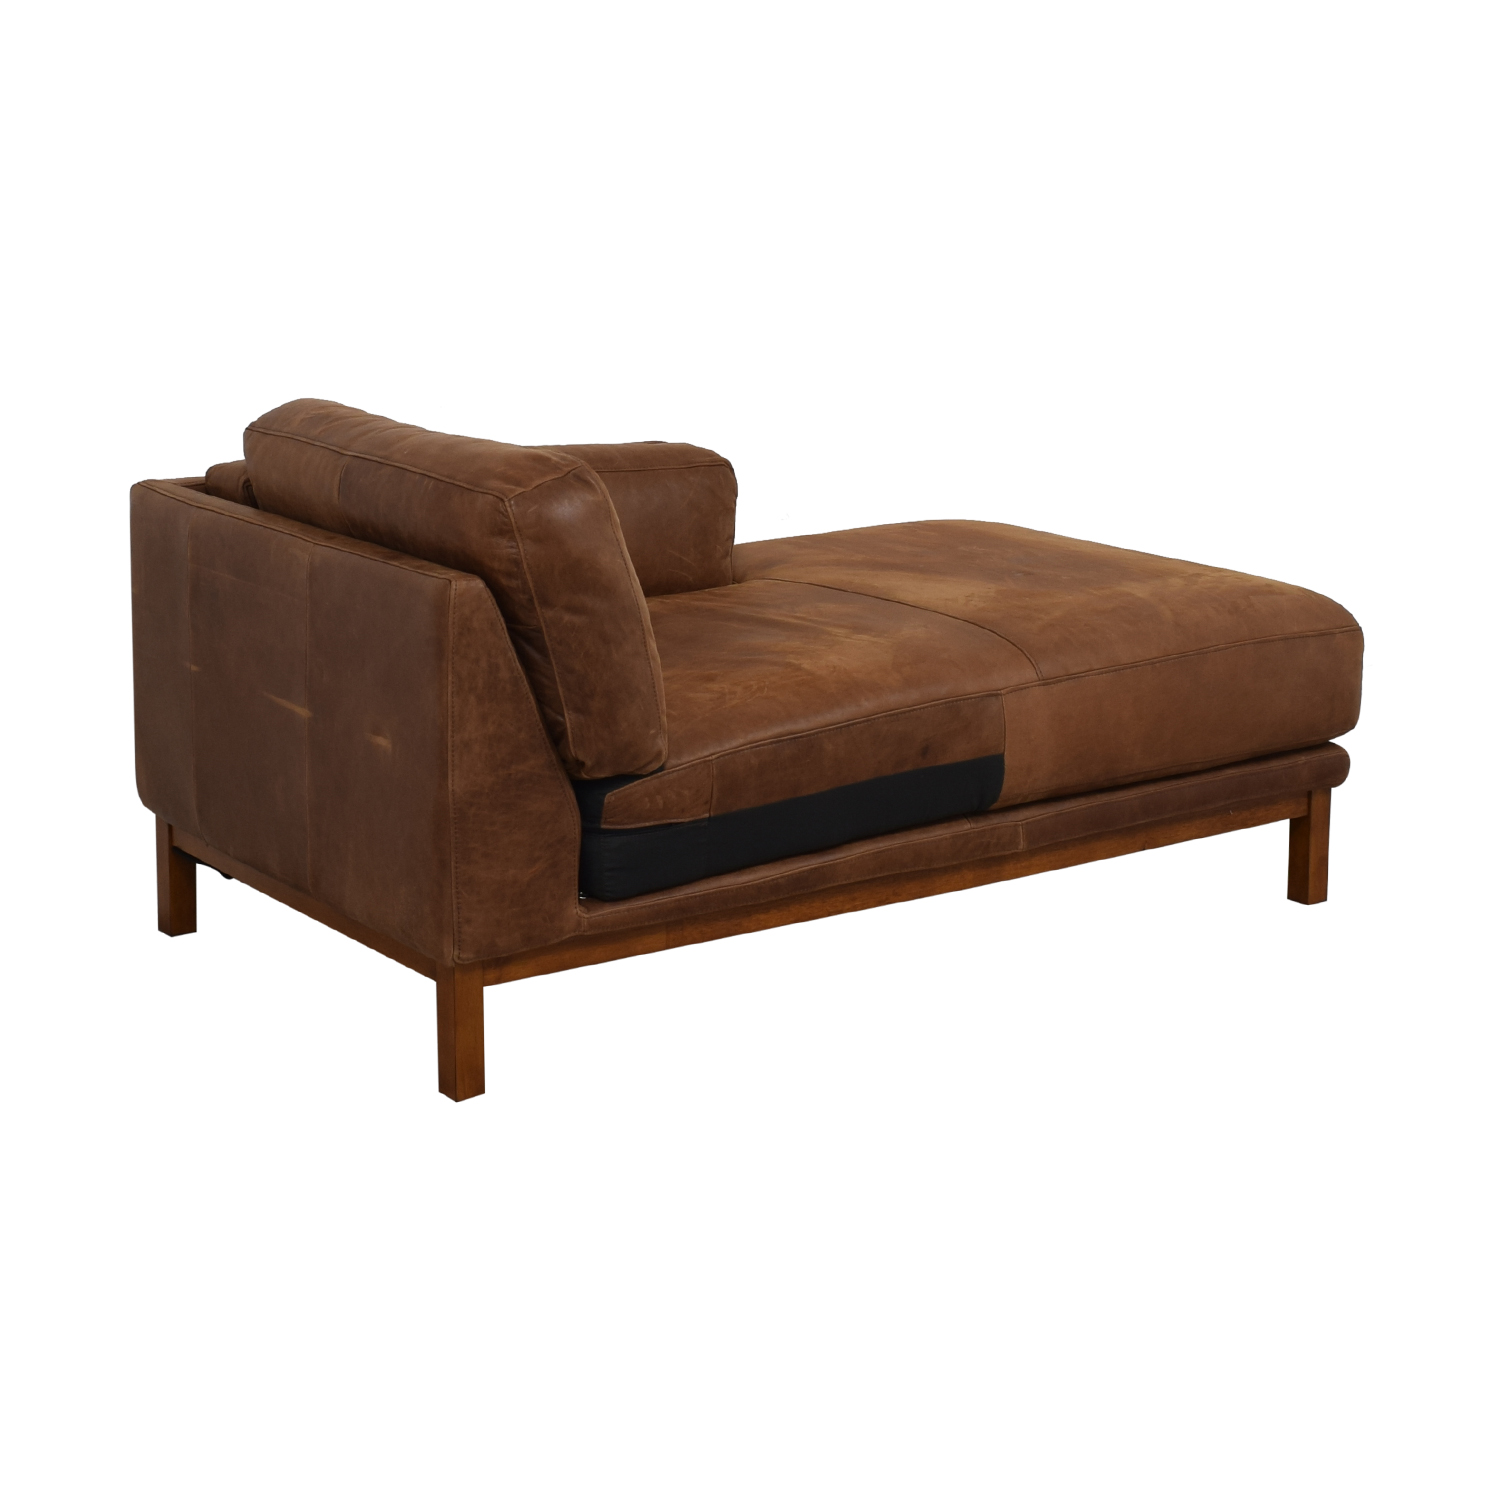 West Elm West Elm Dekalb Cognac Right Arm Chaise